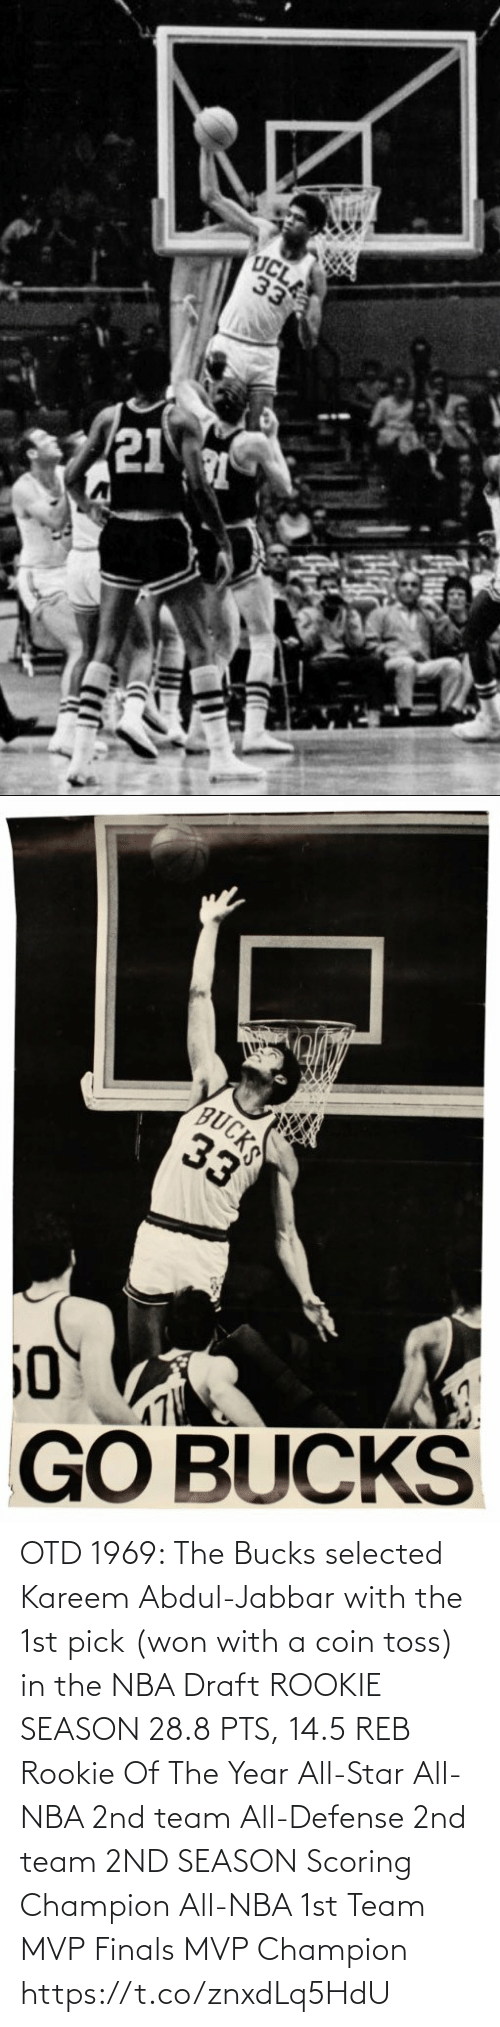 Finals: OTD 1969: The Bucks selected Kareem Abdul-Jabbar with the 1st pick (won with a coin toss) in the NBA Draft   ROOKIE SEASON 28.8 PTS, 14.5 REB Rookie Of The Year All-Star All-NBA 2nd team All-Defense 2nd team  2ND SEASON Scoring Champion All-NBA 1st Team MVP Finals MVP Champion https://t.co/znxdLq5HdU